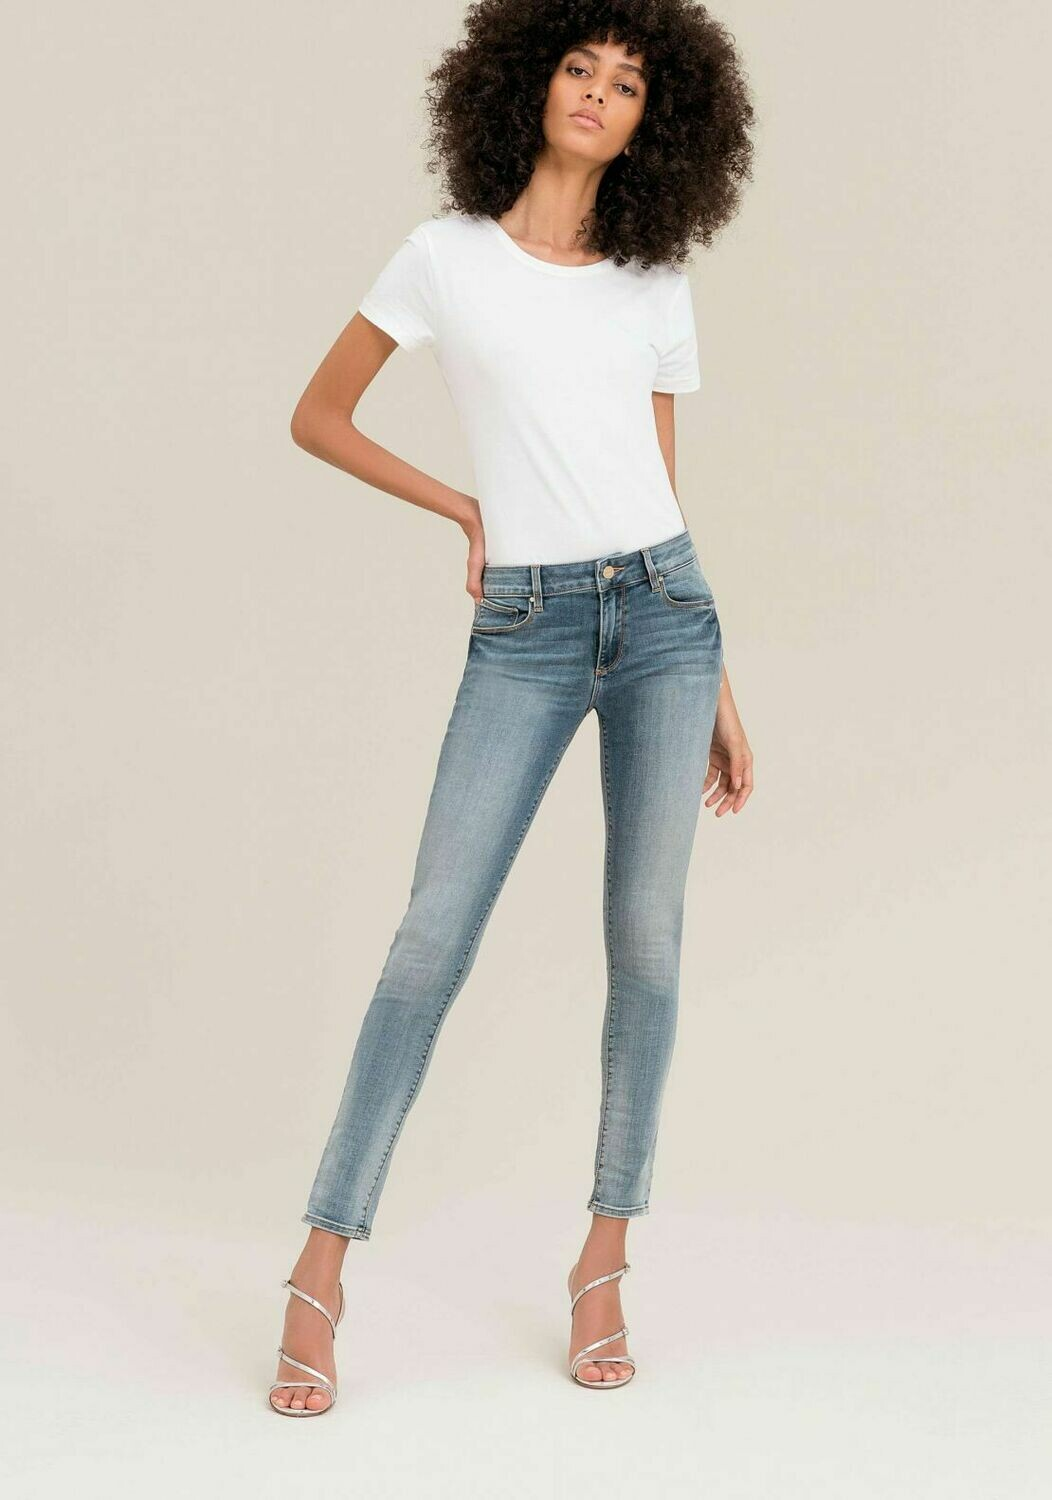 Jeans Bella perfect shape by Fracomina